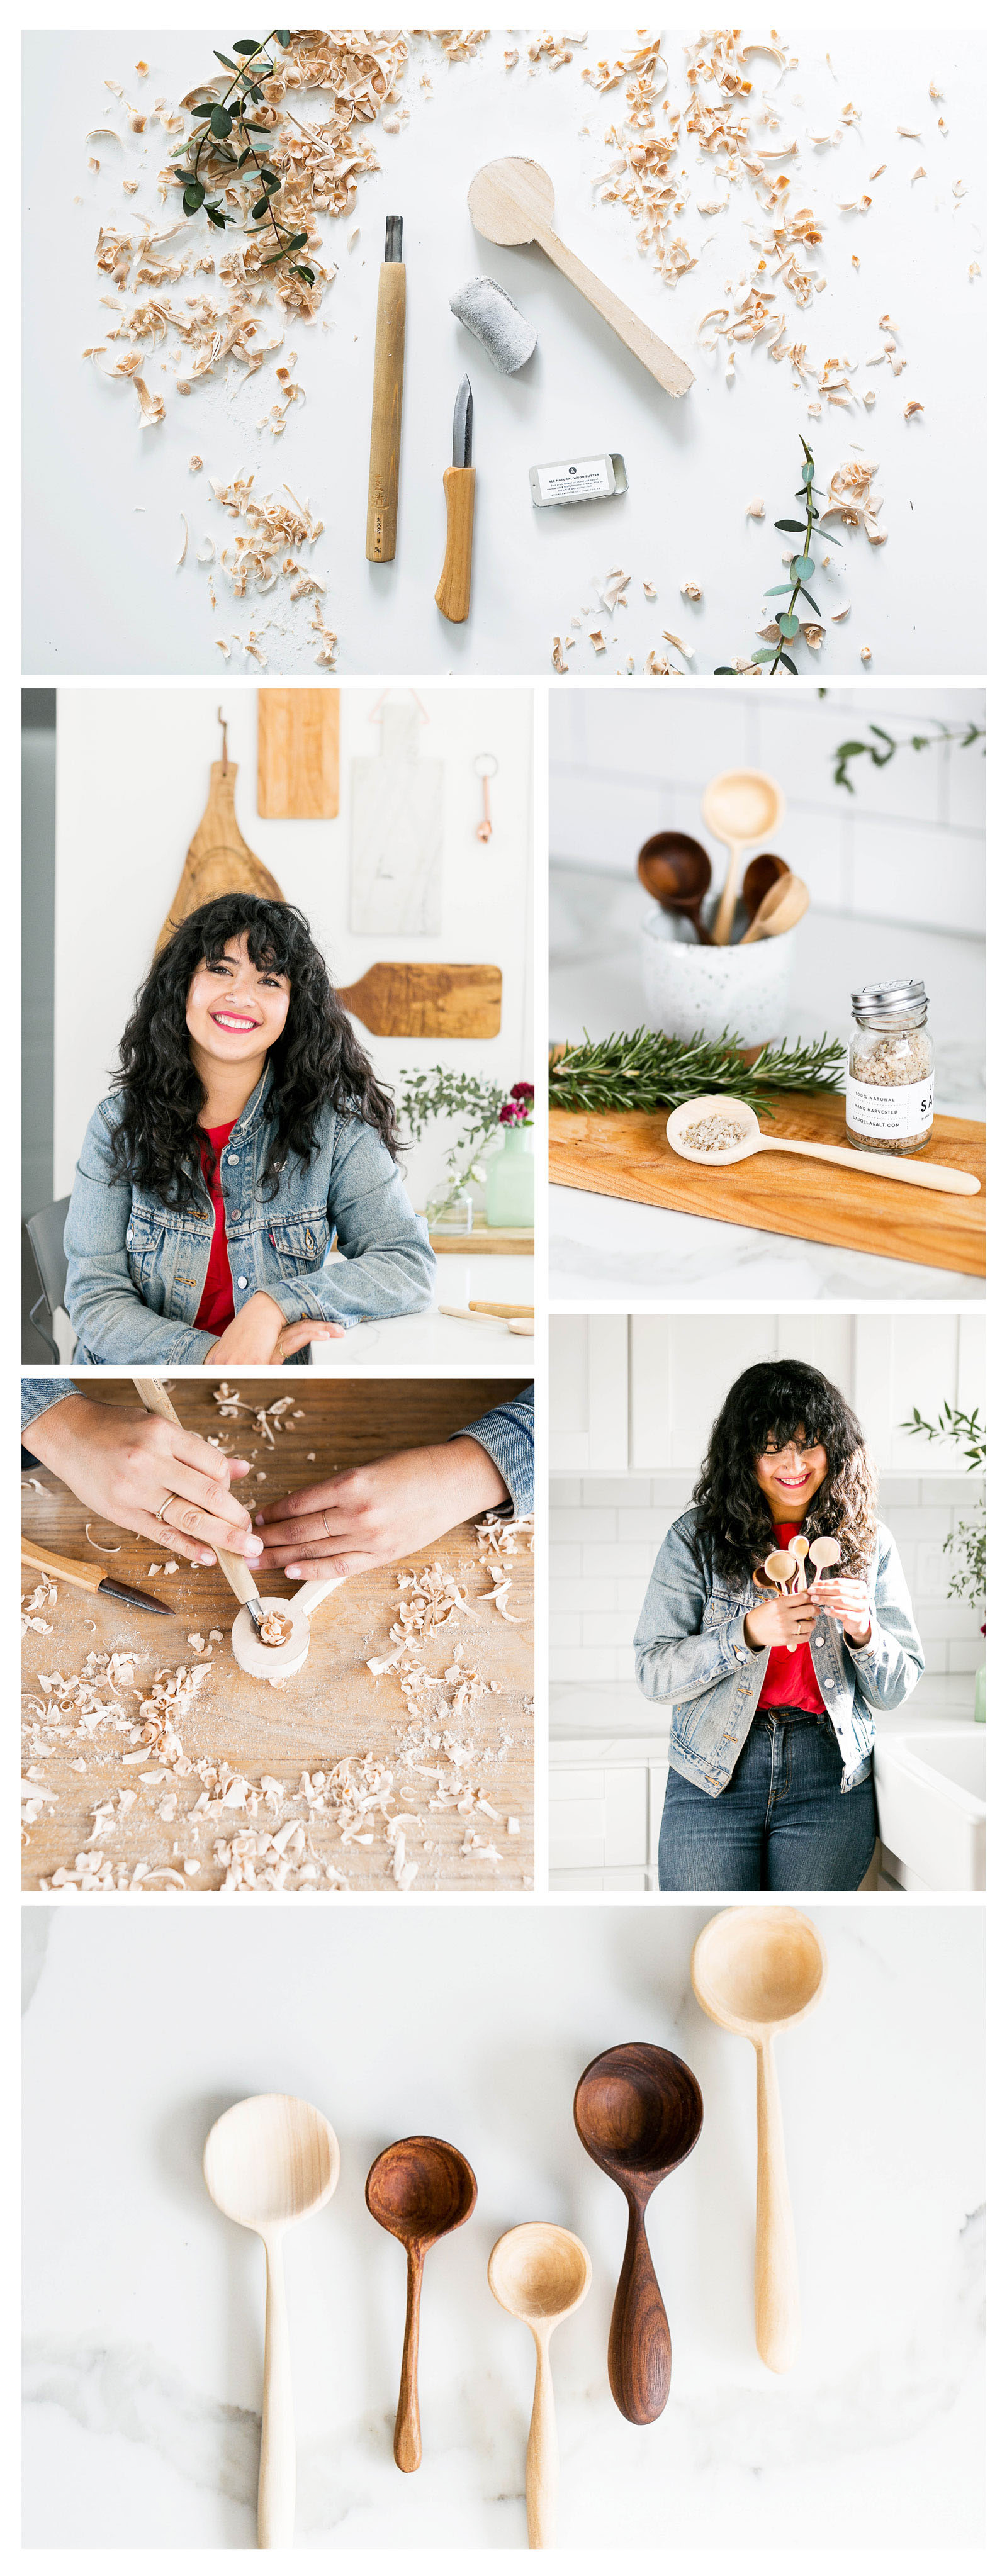 Carved Wooden Spoons | Melanie Abrantes | The Crafter's Box